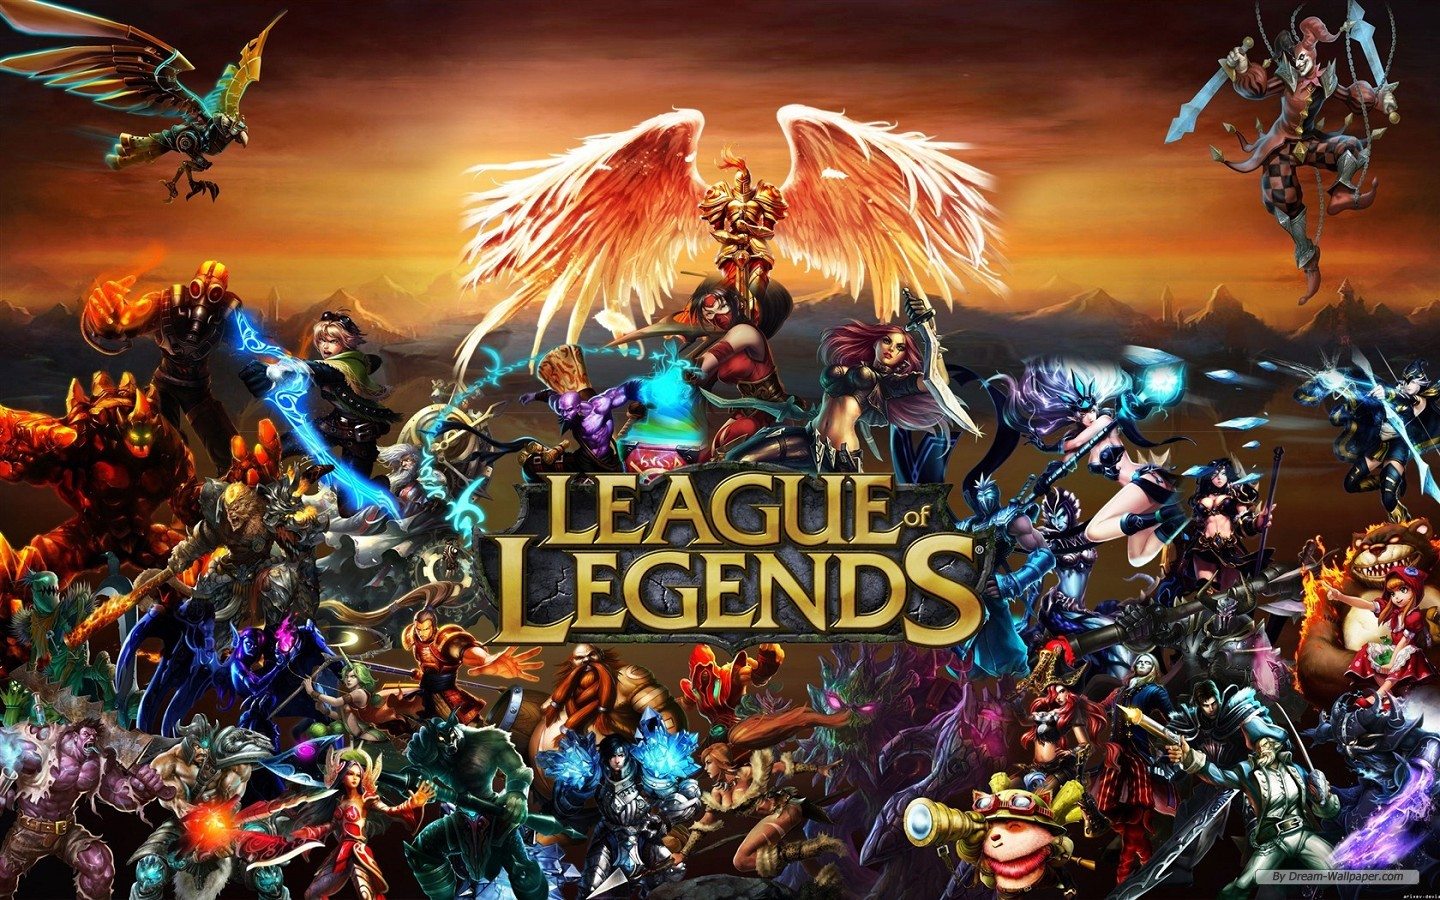 League-of-Legends-Game-freee-download.jpg (1440×900)